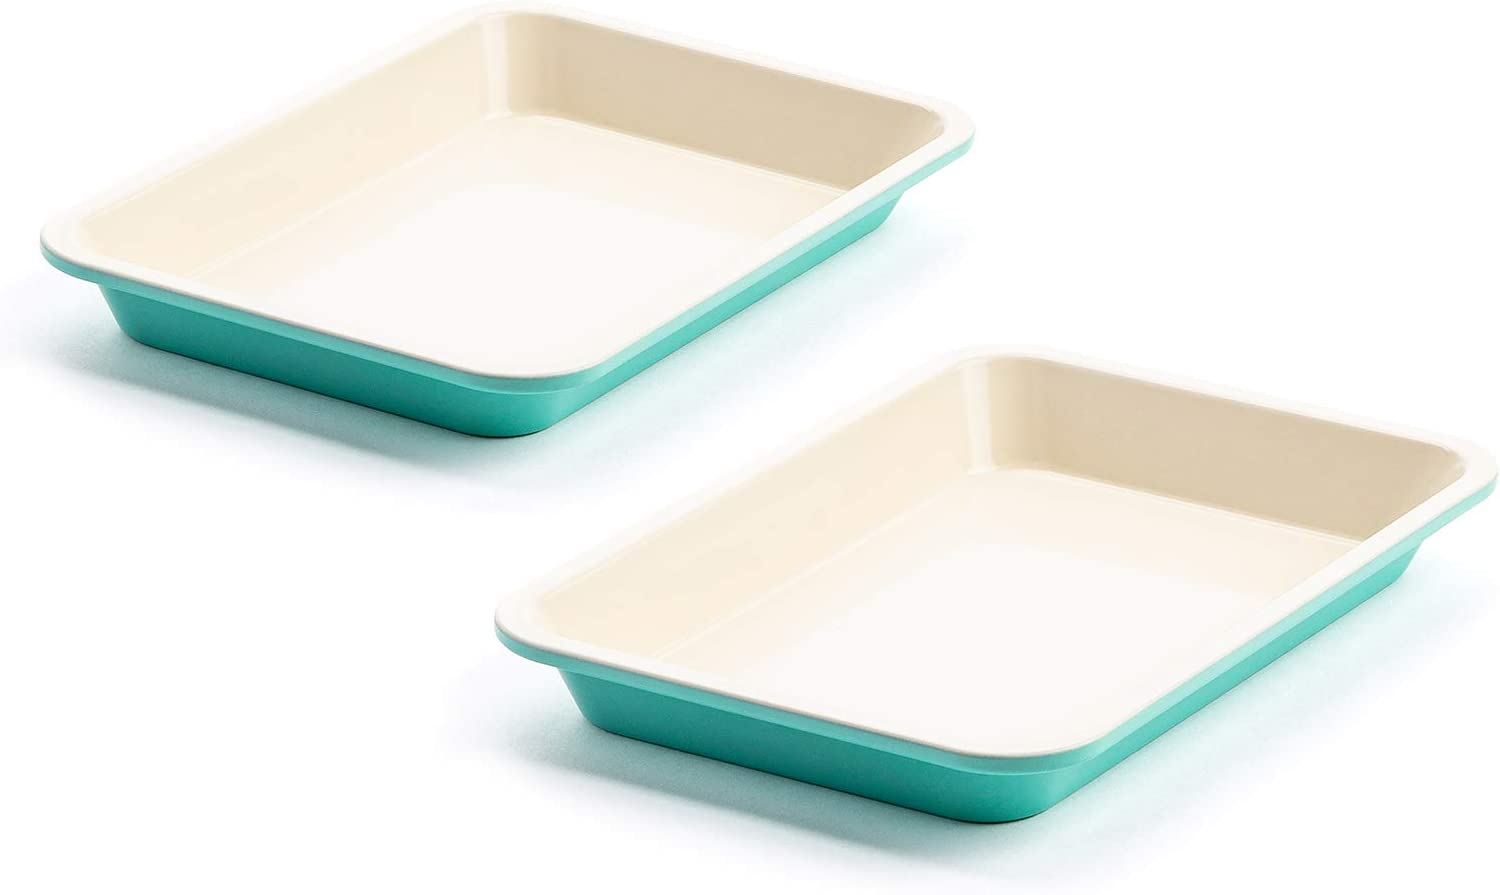 9 x 7 CC003908-001 Set of 2 GreenLife Healthy Ceramic Nonstick Turquoise Toaster Oven Sheet Pans